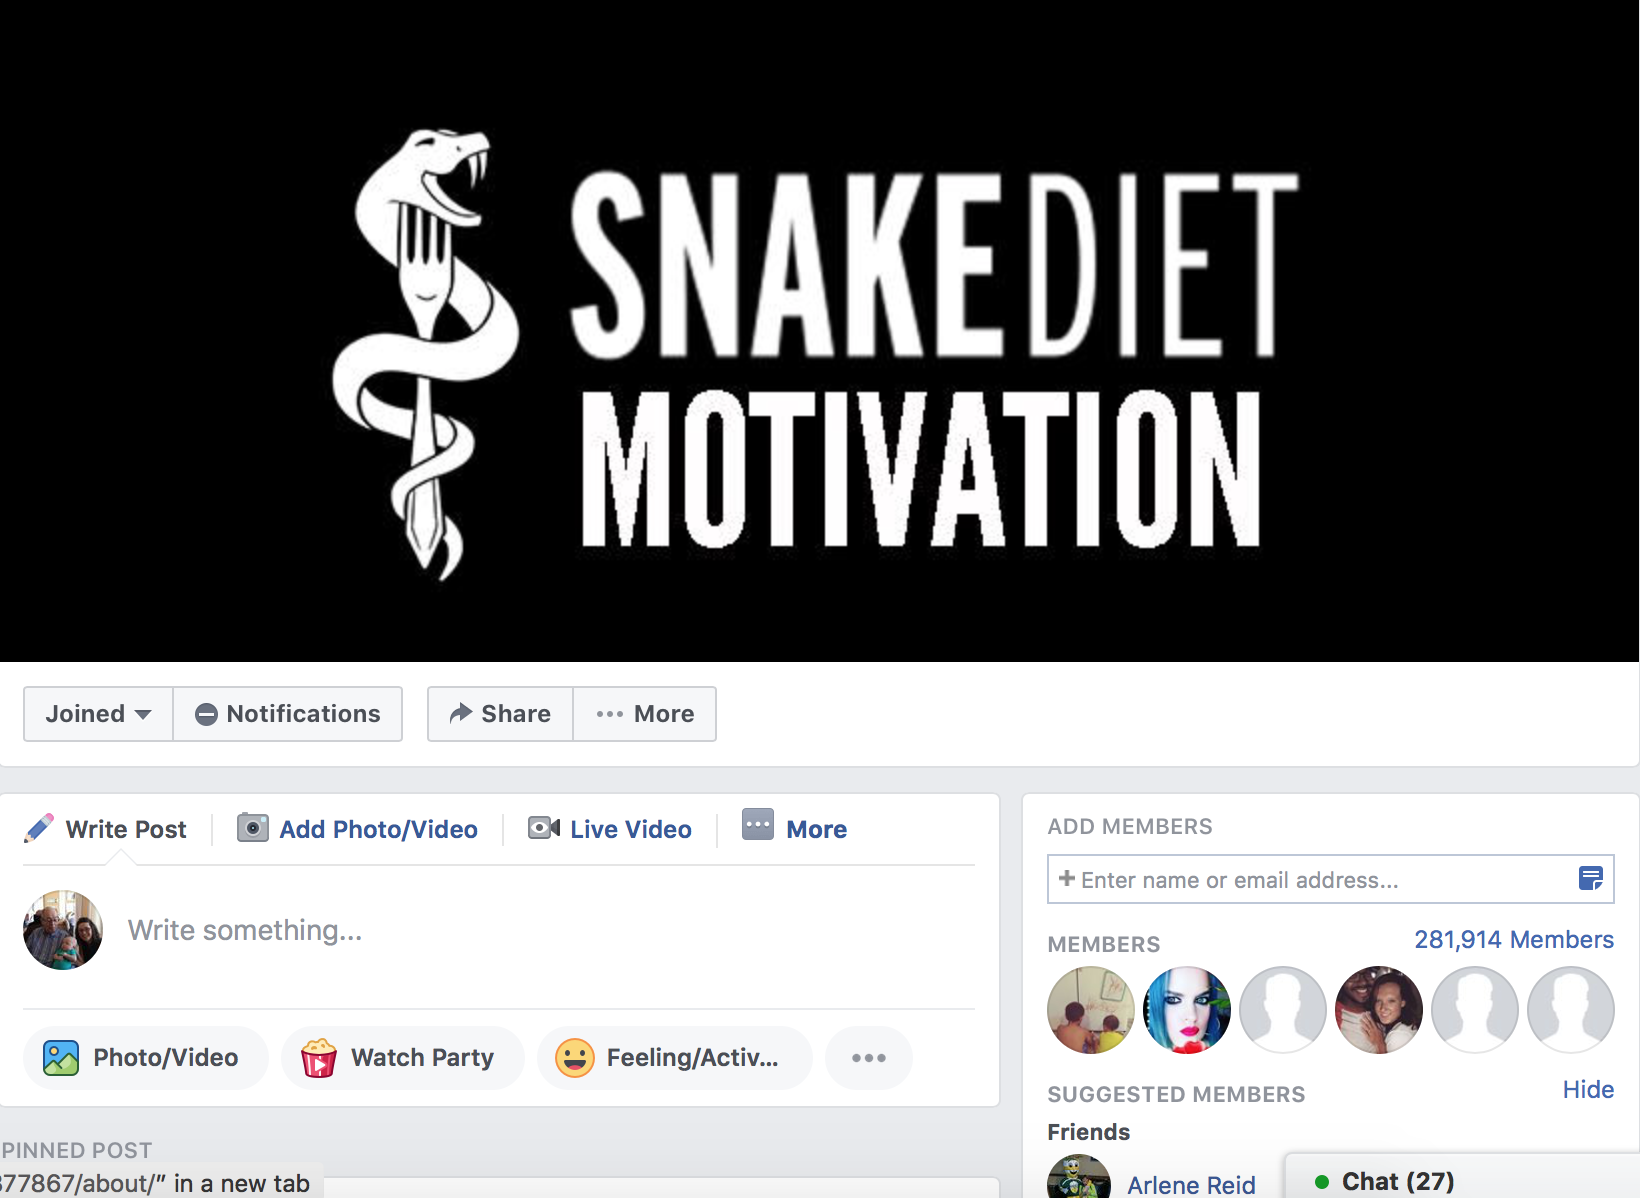 Over 280,000 Strong - The online Snake Diet Motivation community spans the globe. It will provide you will the motivation you need to succeed.